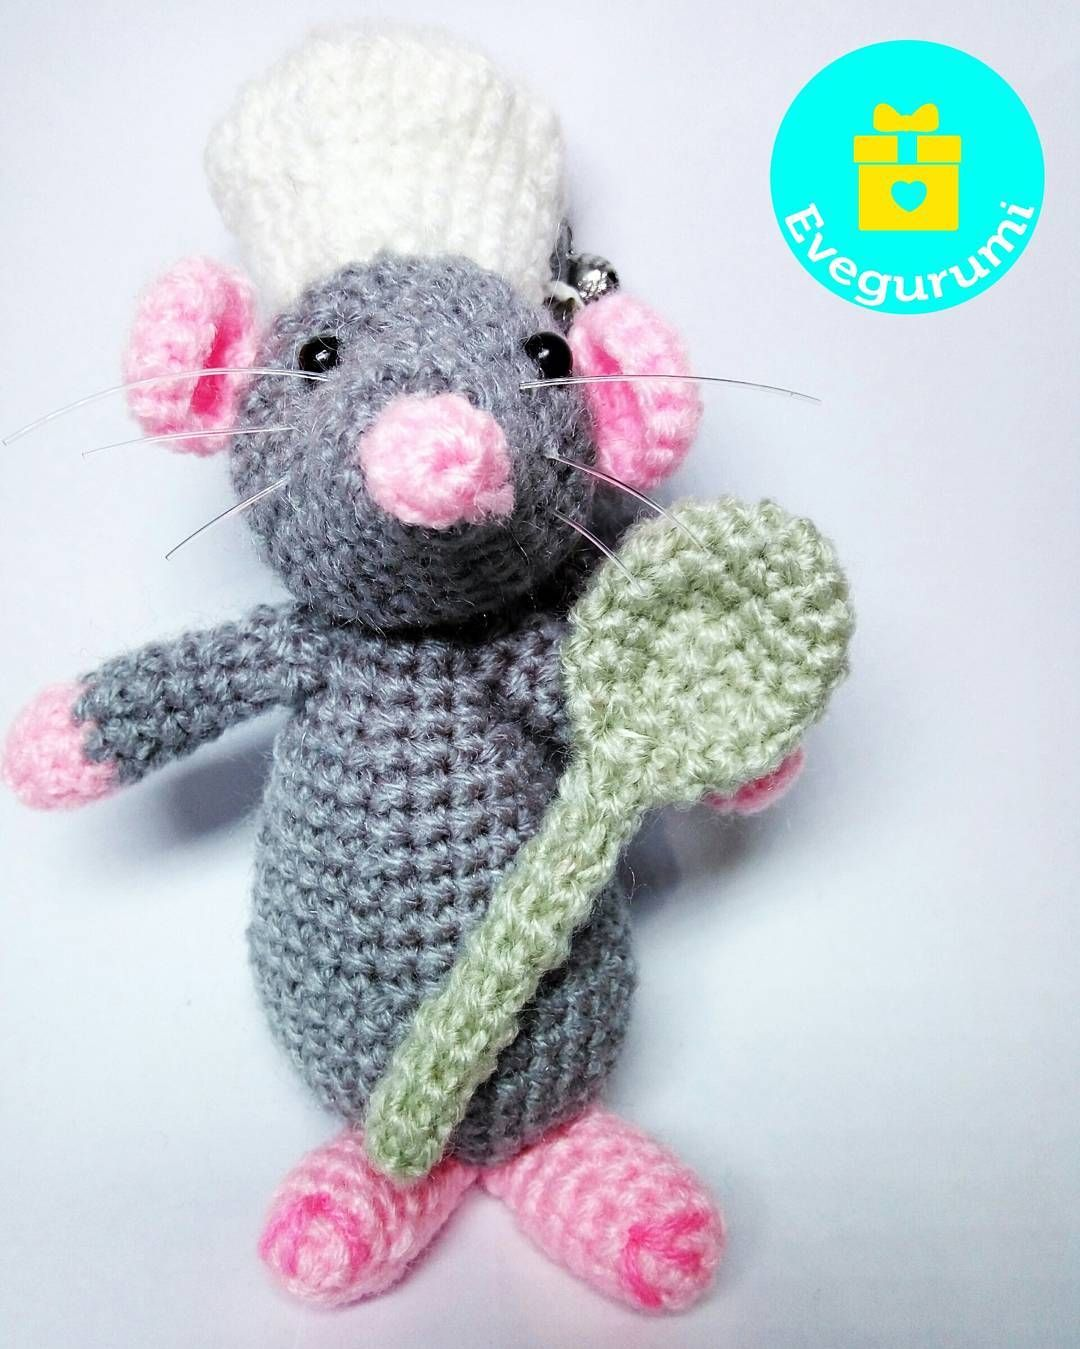 RATATOUILLE  Height : 13cm Price only : 75k CAN REQUEST ANY KIND OF CHARACTER  Adopt me adopt me !  #amigurumi #amigurumiindonesia #amigurumimedan #amigurumicrochet #crochetdoll #jualamigurumi #bonekarajut #jualboneka #jualbonekarajut #gantungan #gantungankunci #gantunganhandphone #jualgantungan #jualgantungankunci #jualgantunganhandphone #bagcharm #jualbagcharm #jualboneka #boneka #kado #kadoulangtahun #birthdaygift #jualkado #valentinegift #amigurumiratatouille #ratatouille by evegurumi